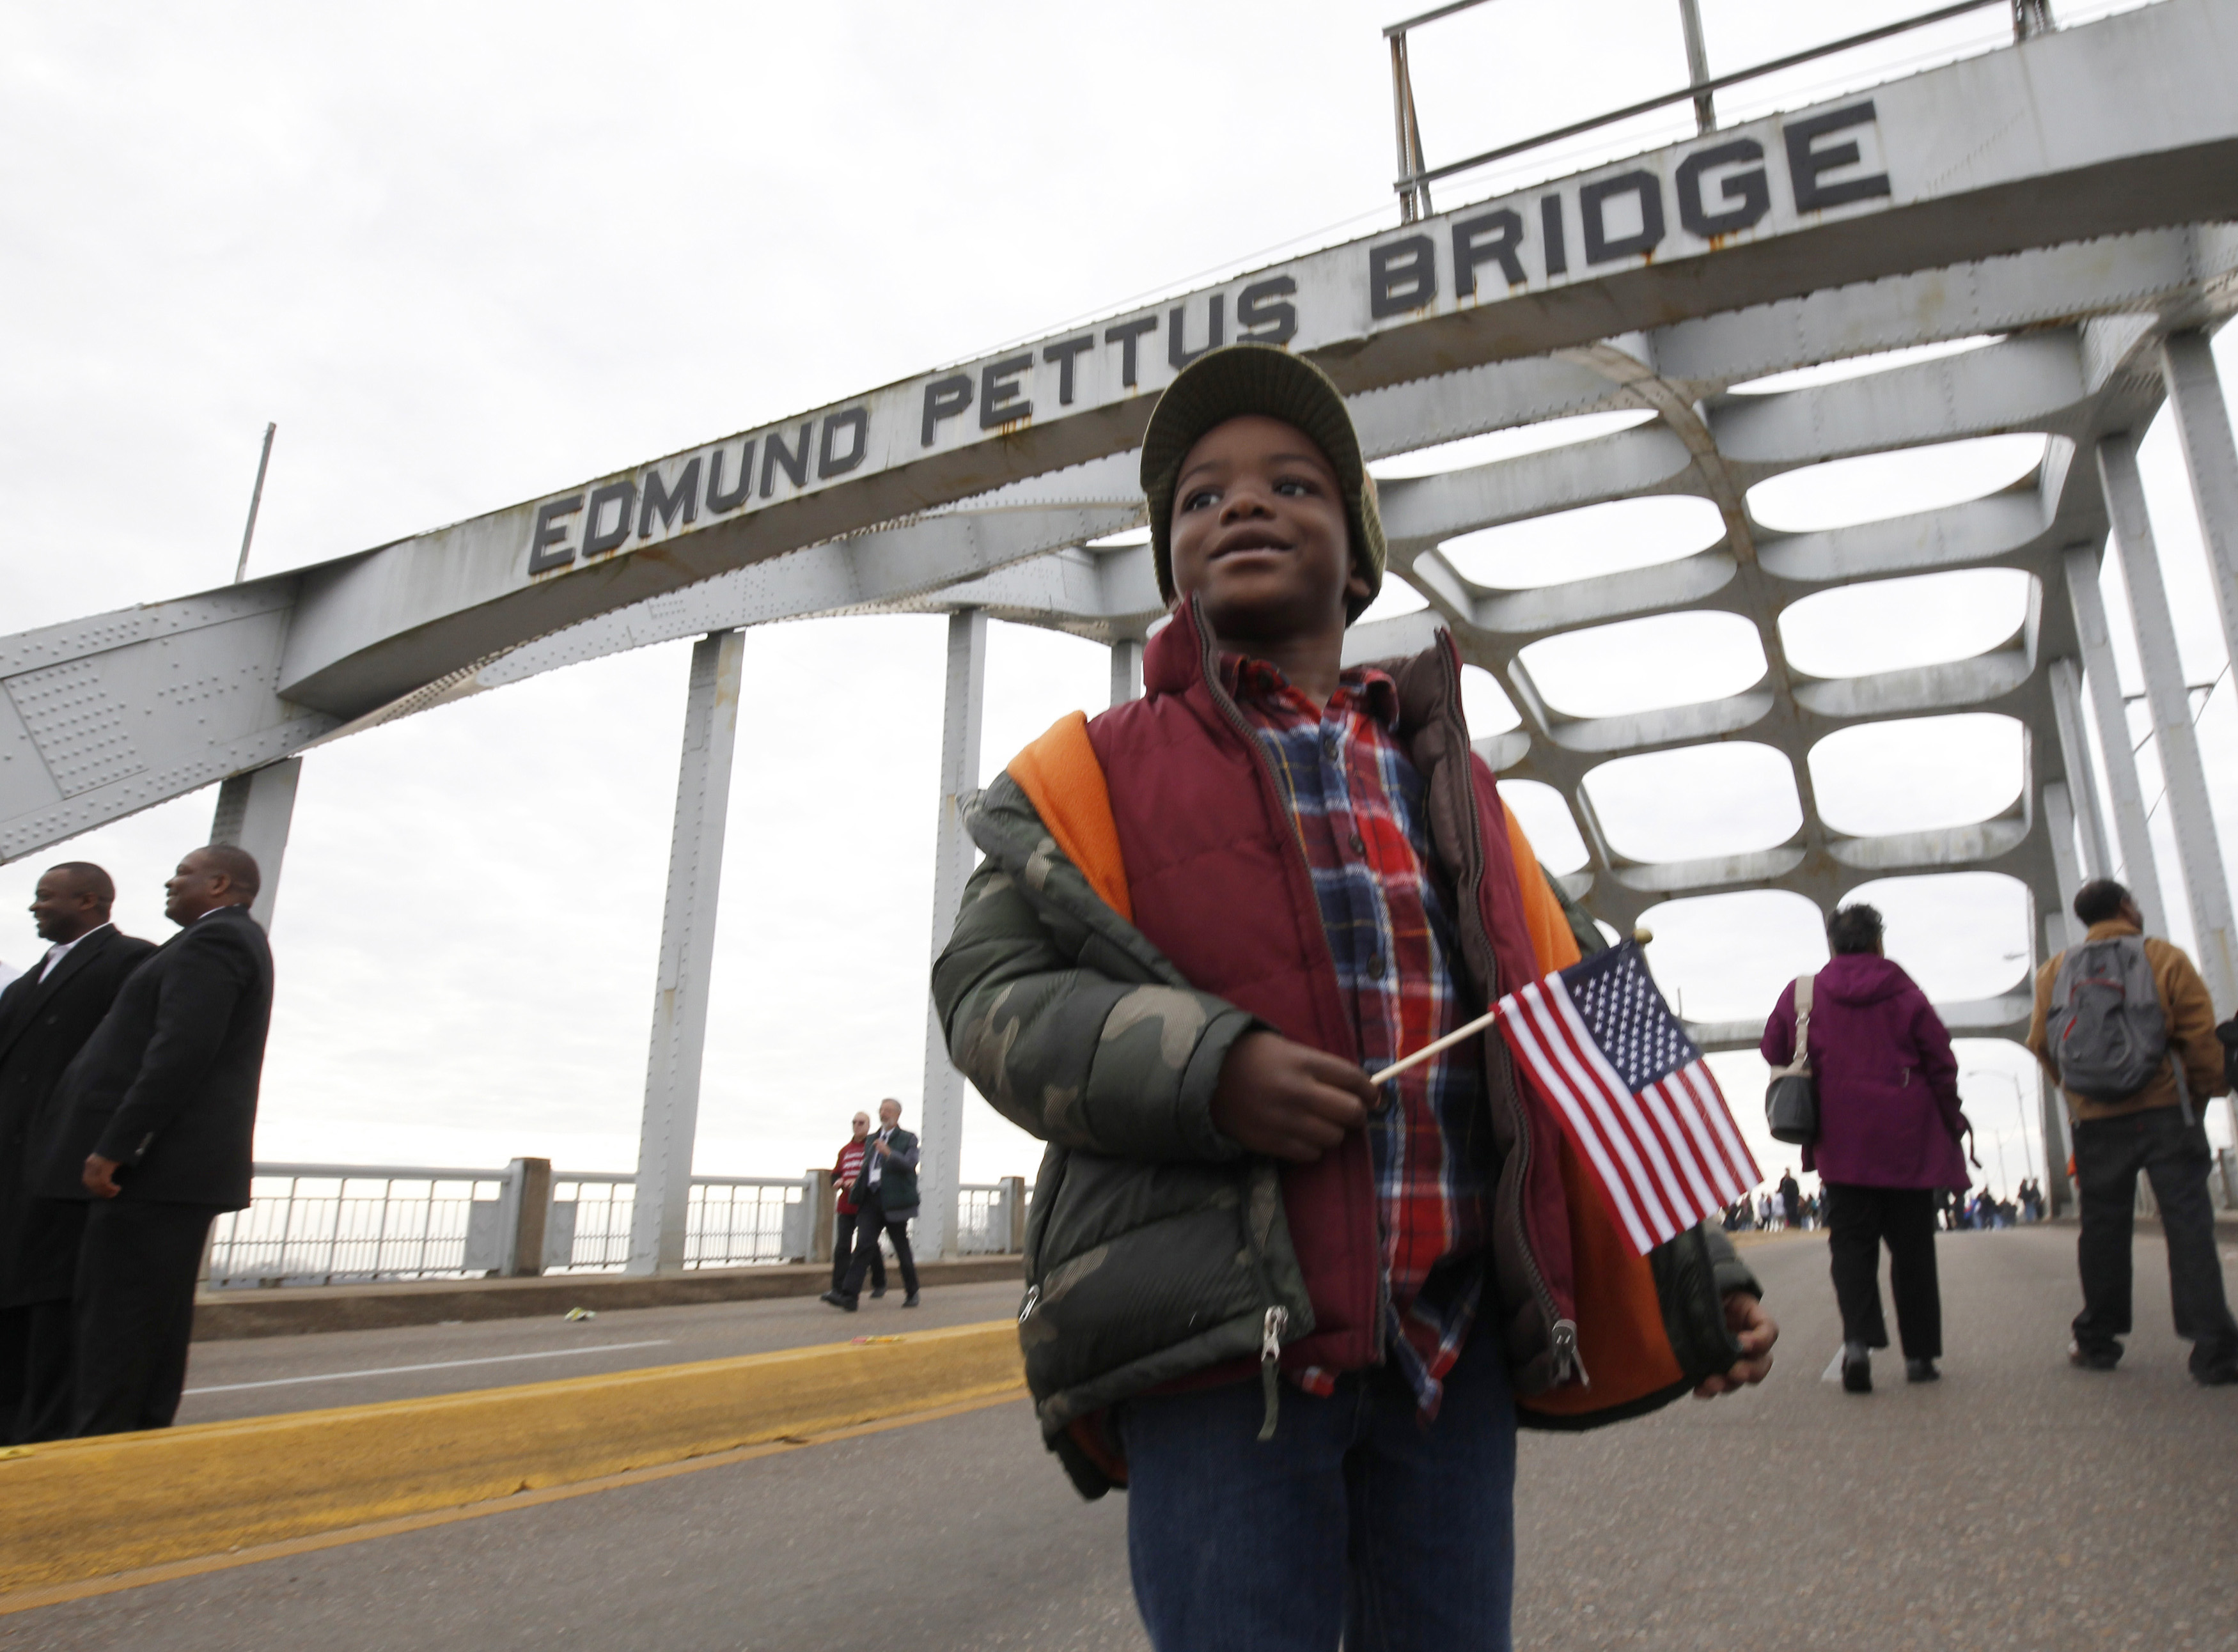 Five year old Kendarius Vickers stands on the Edmund Pettus Bridge as he waits for his family before the beginning of the 50th anniversary of the Selma to Montgomery civil rights march in Selma, Alabama March 8, 2015. REUTERS/Tami Chappell  (UNITED STATES - Tags: POLITICS ANNIVERSARY SOCIETY) - RTR4SIDS